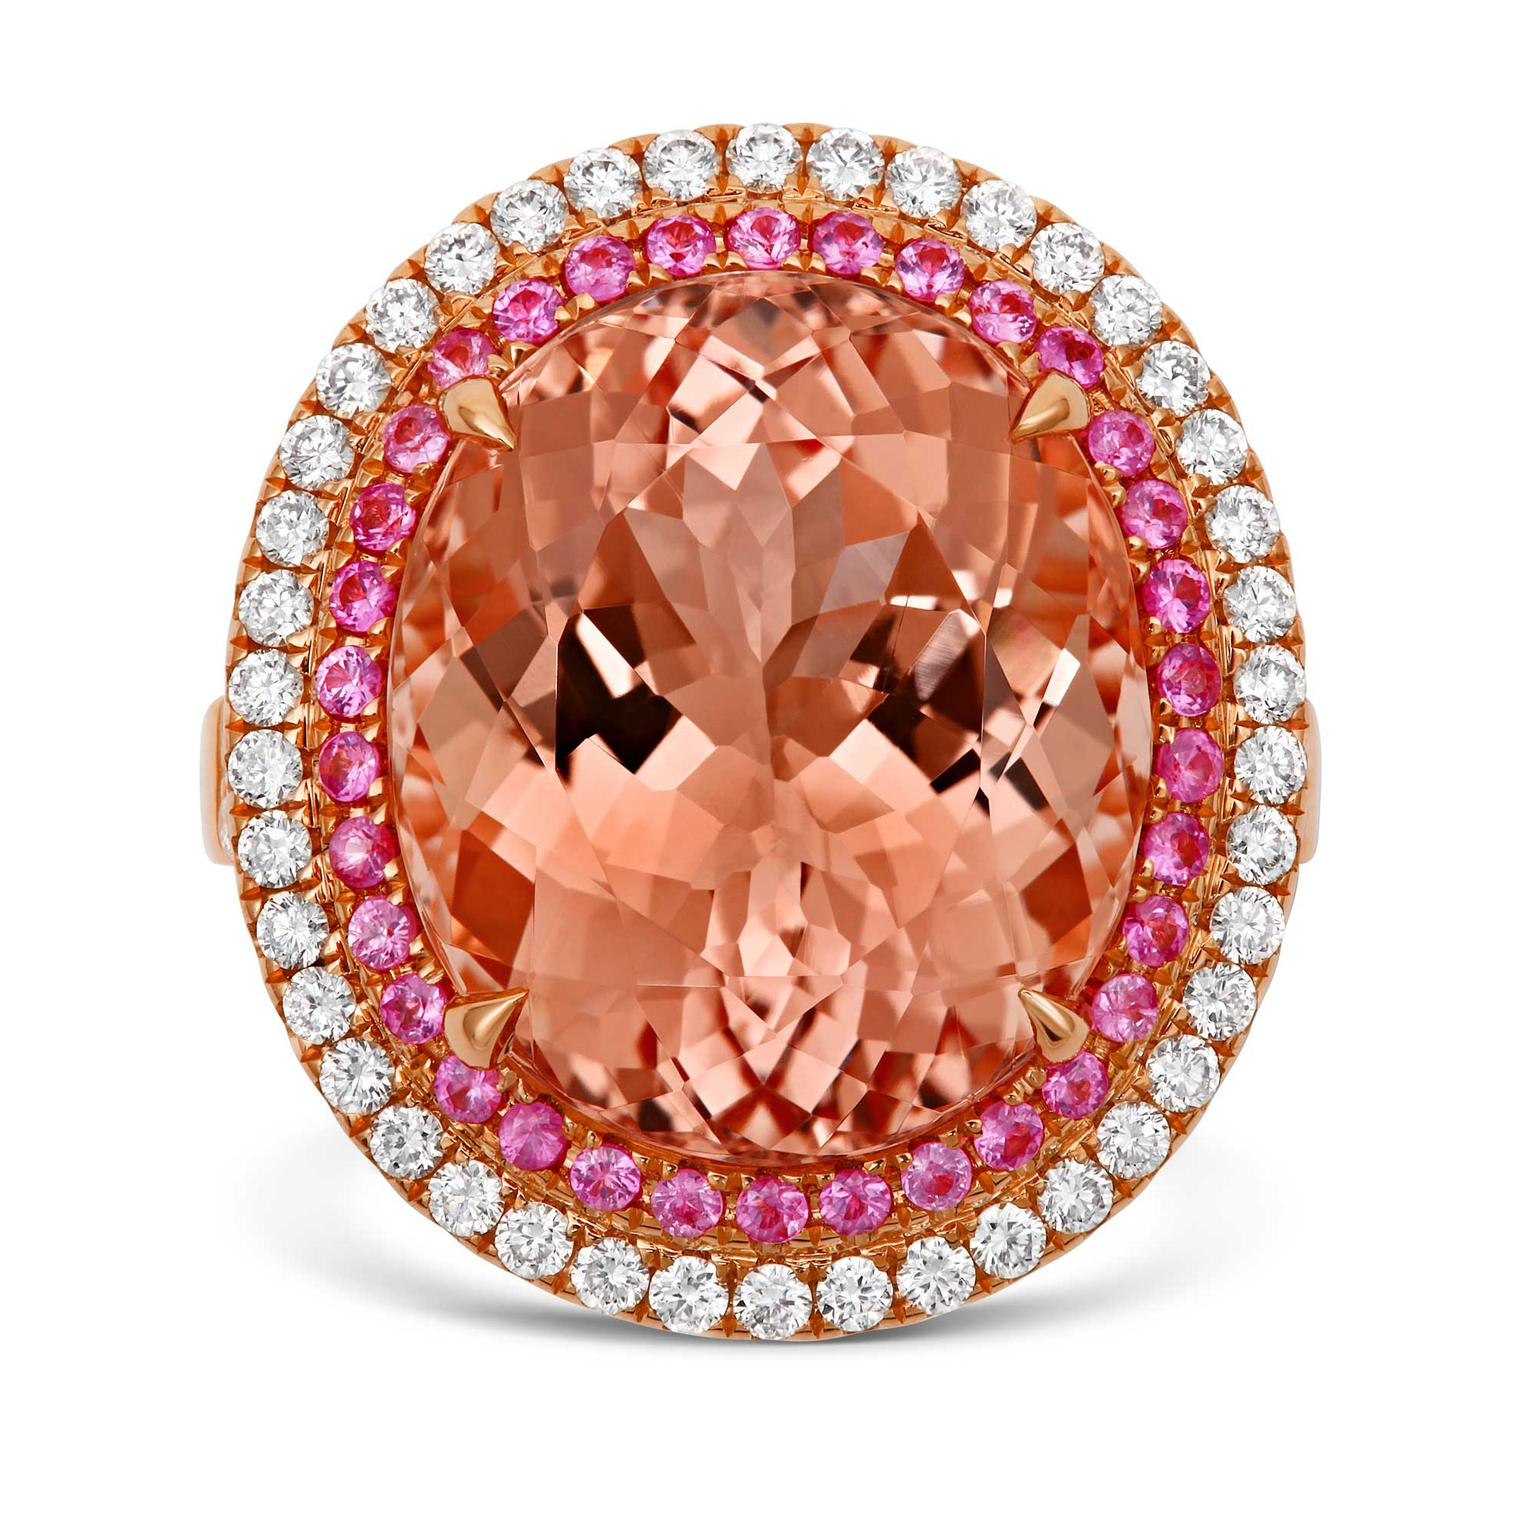 Tivon morganite ring